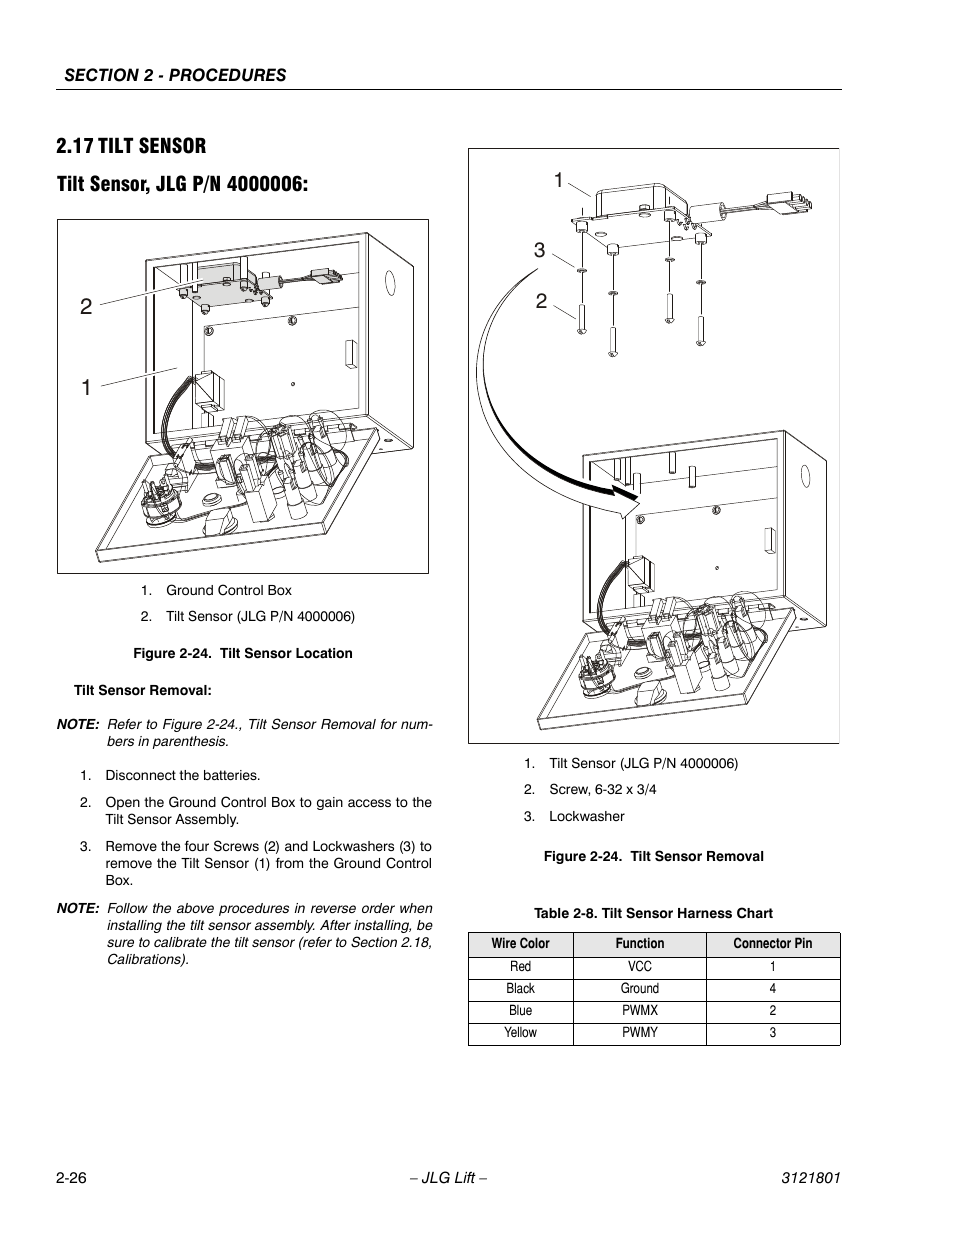 jlg 260 mrt wiring diagram wiring diagram and schematic 5600 ford tractor wiring diagram diagrams base